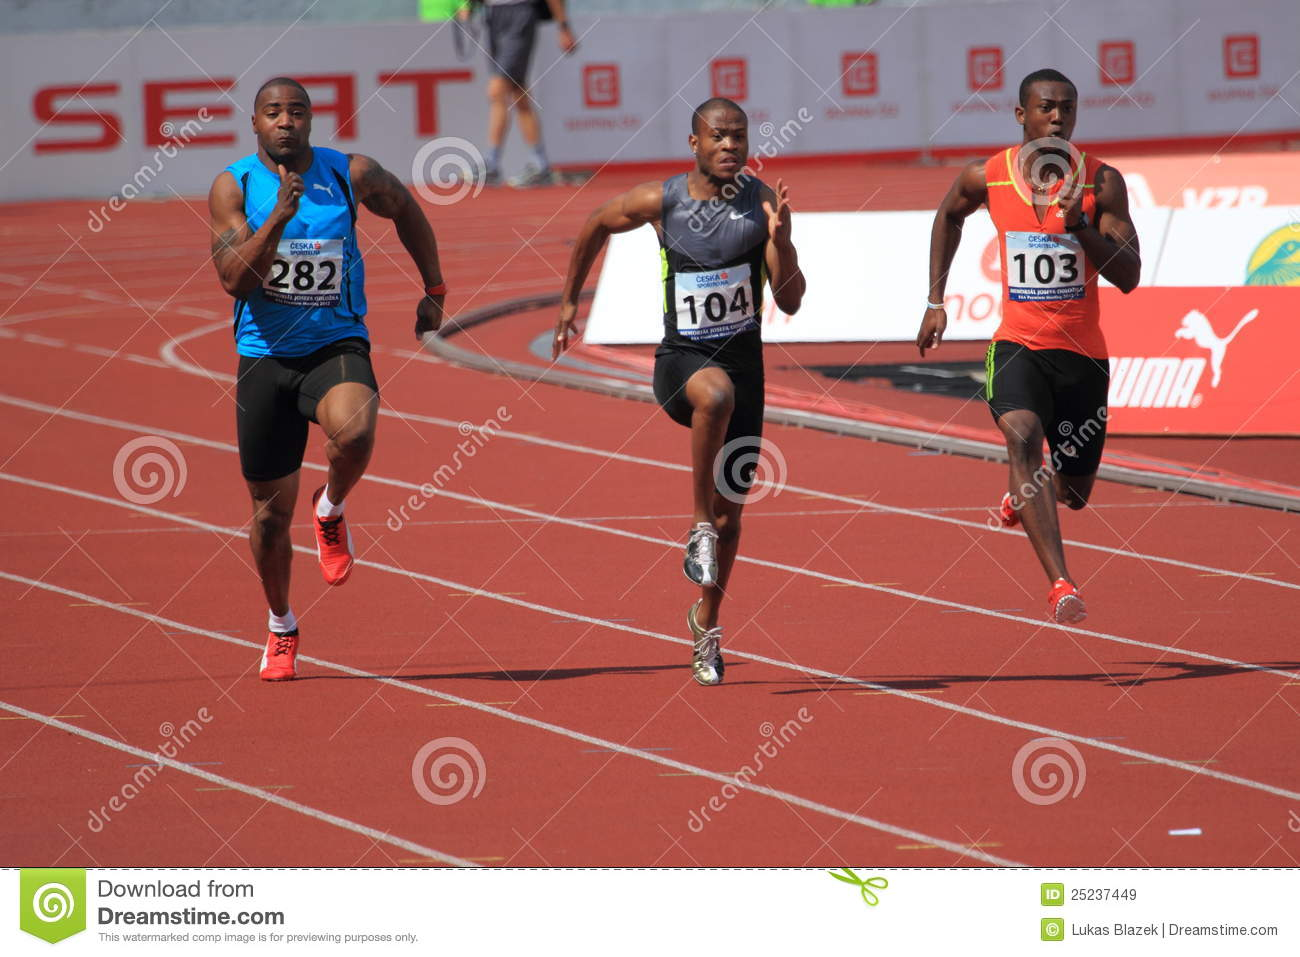 The sprinters in the 100 metres men race held within the 19th annual